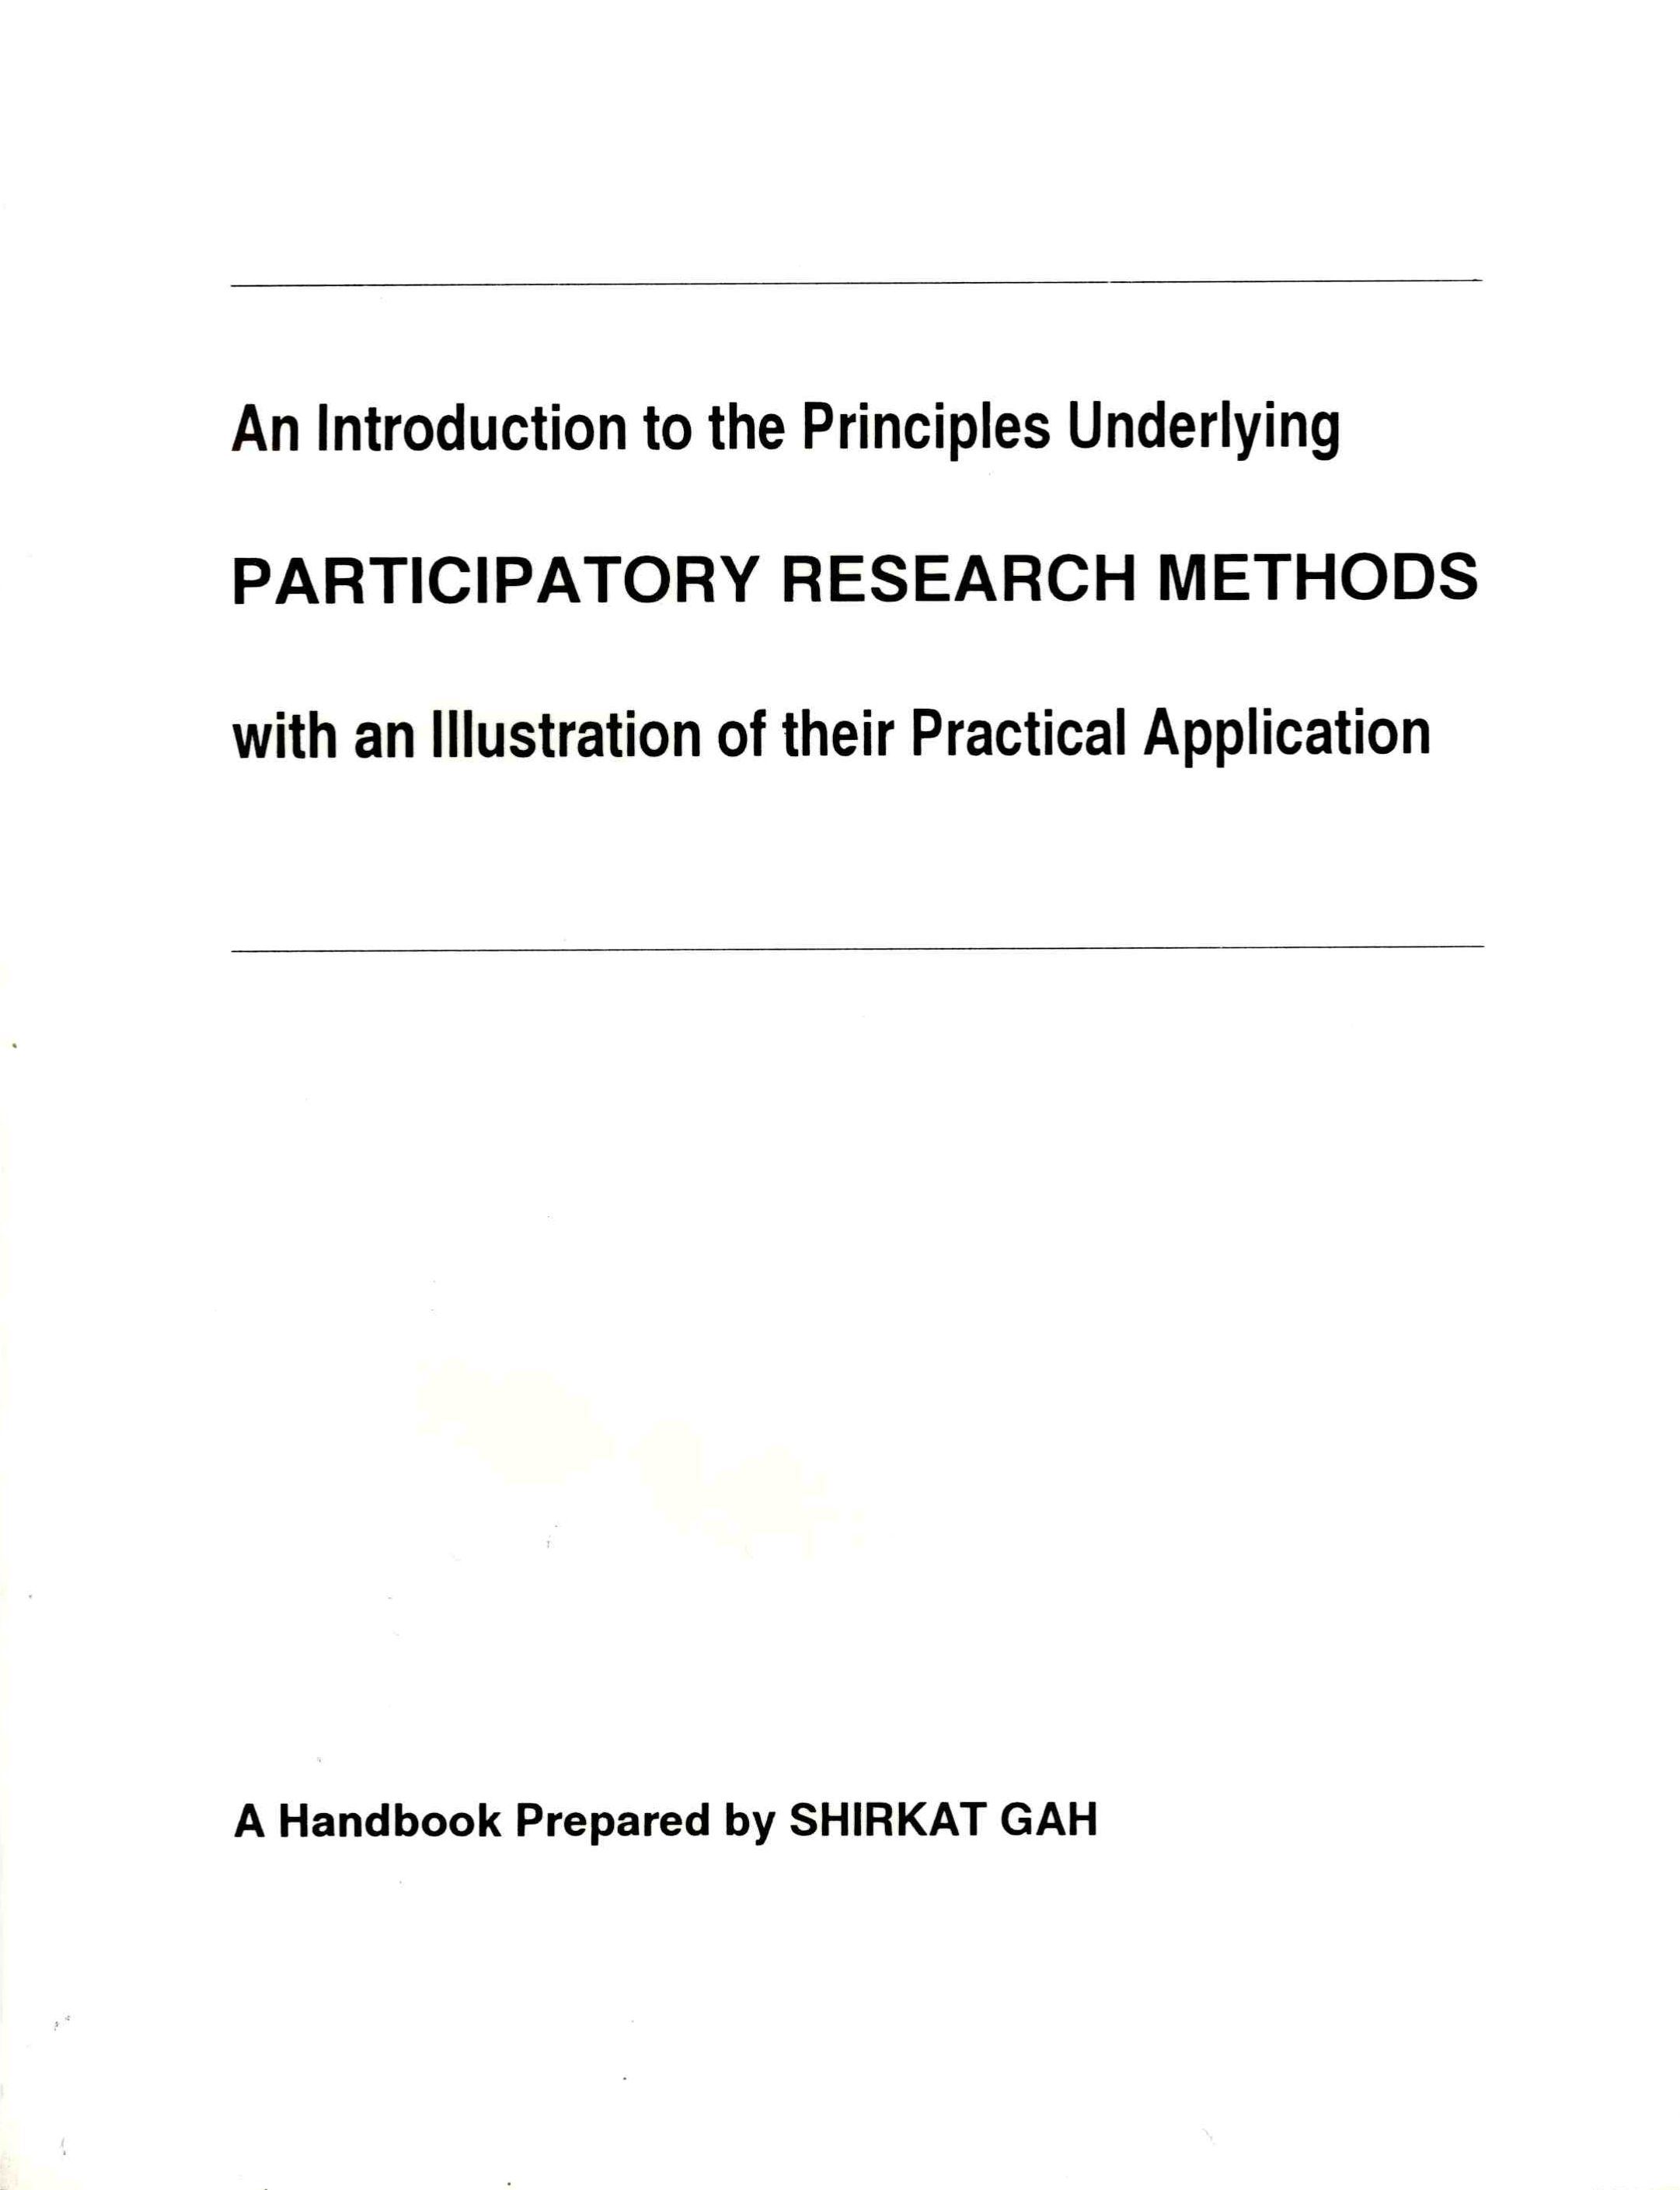 An Introduction to the Principles Underlying Participatory Research Methods